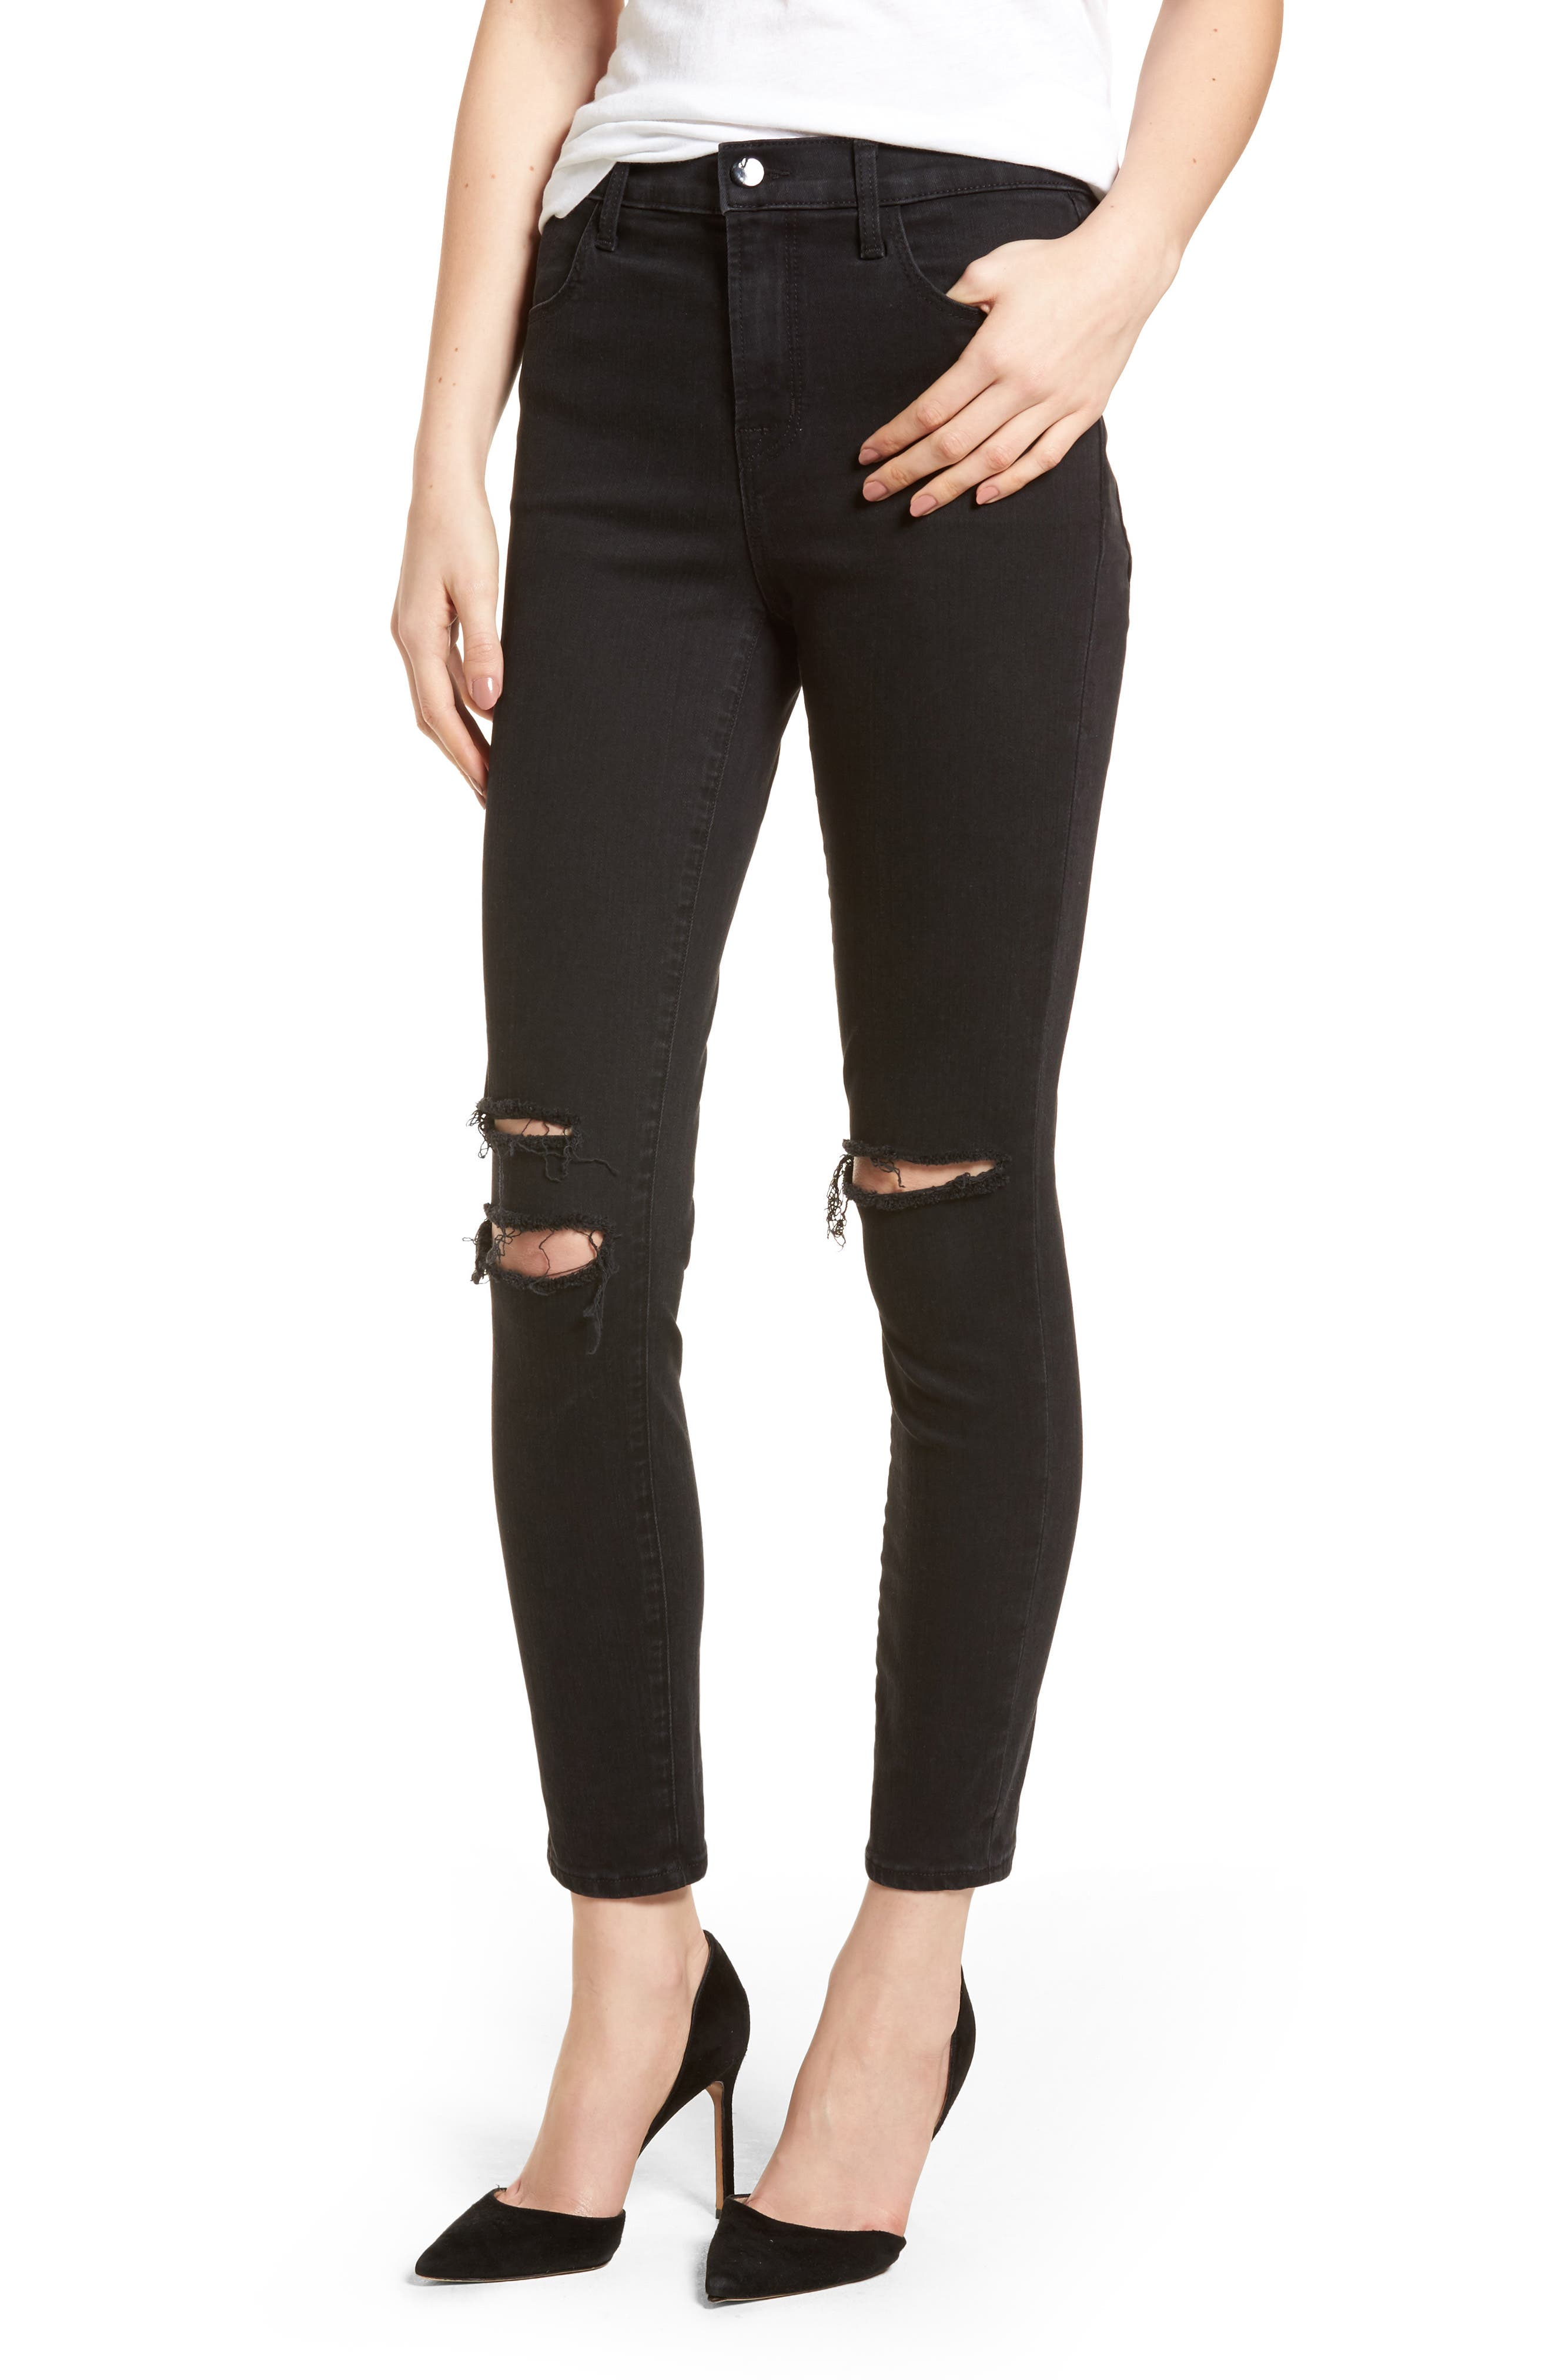 Alternate Image 1 Selected - J Brand Alana High Waist Ankle Skinny Jeans (Black Mercy) (Nordstrom Exclusive)